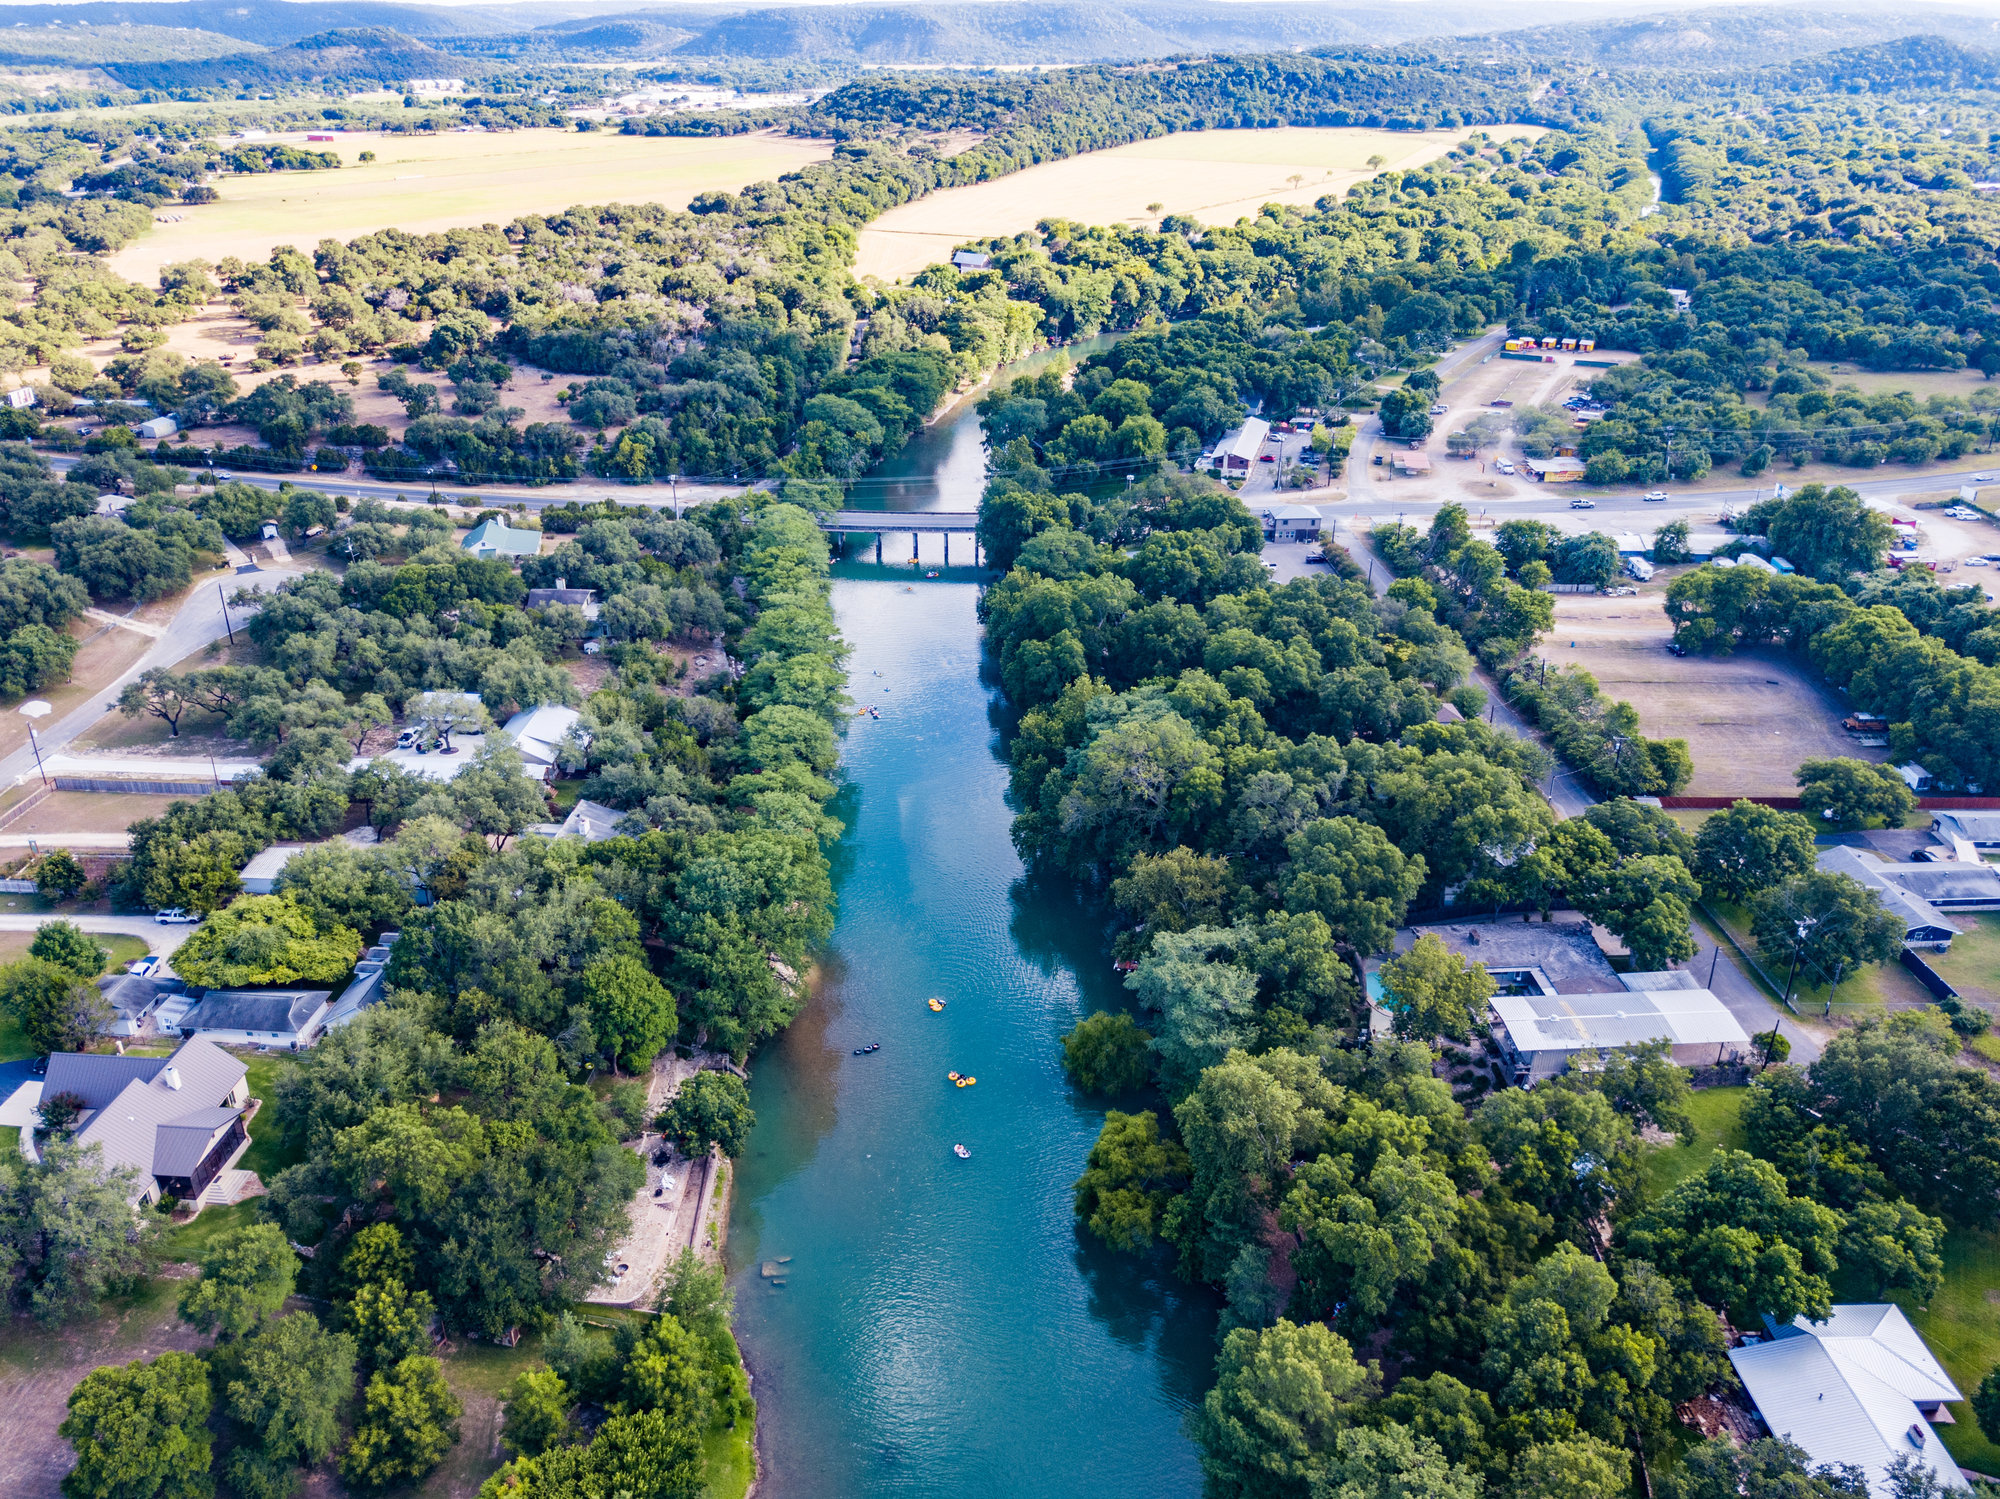 New Braunfels, Texas and the Guadalupe River